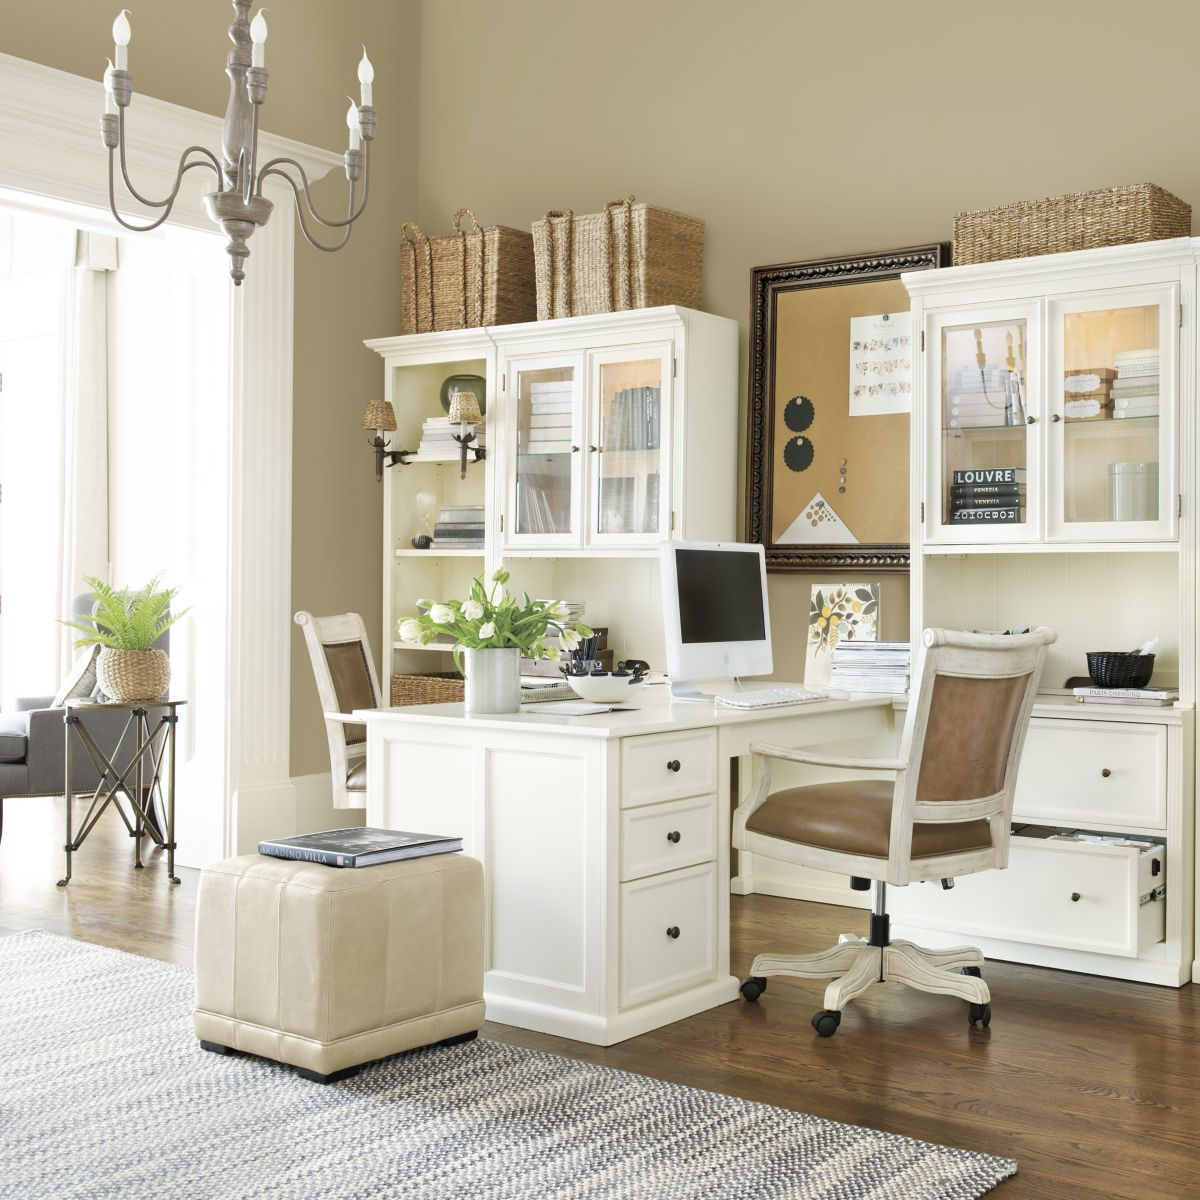 Tuscan Return Office Group - Large | Pinterest | Small spaces, Bump ...